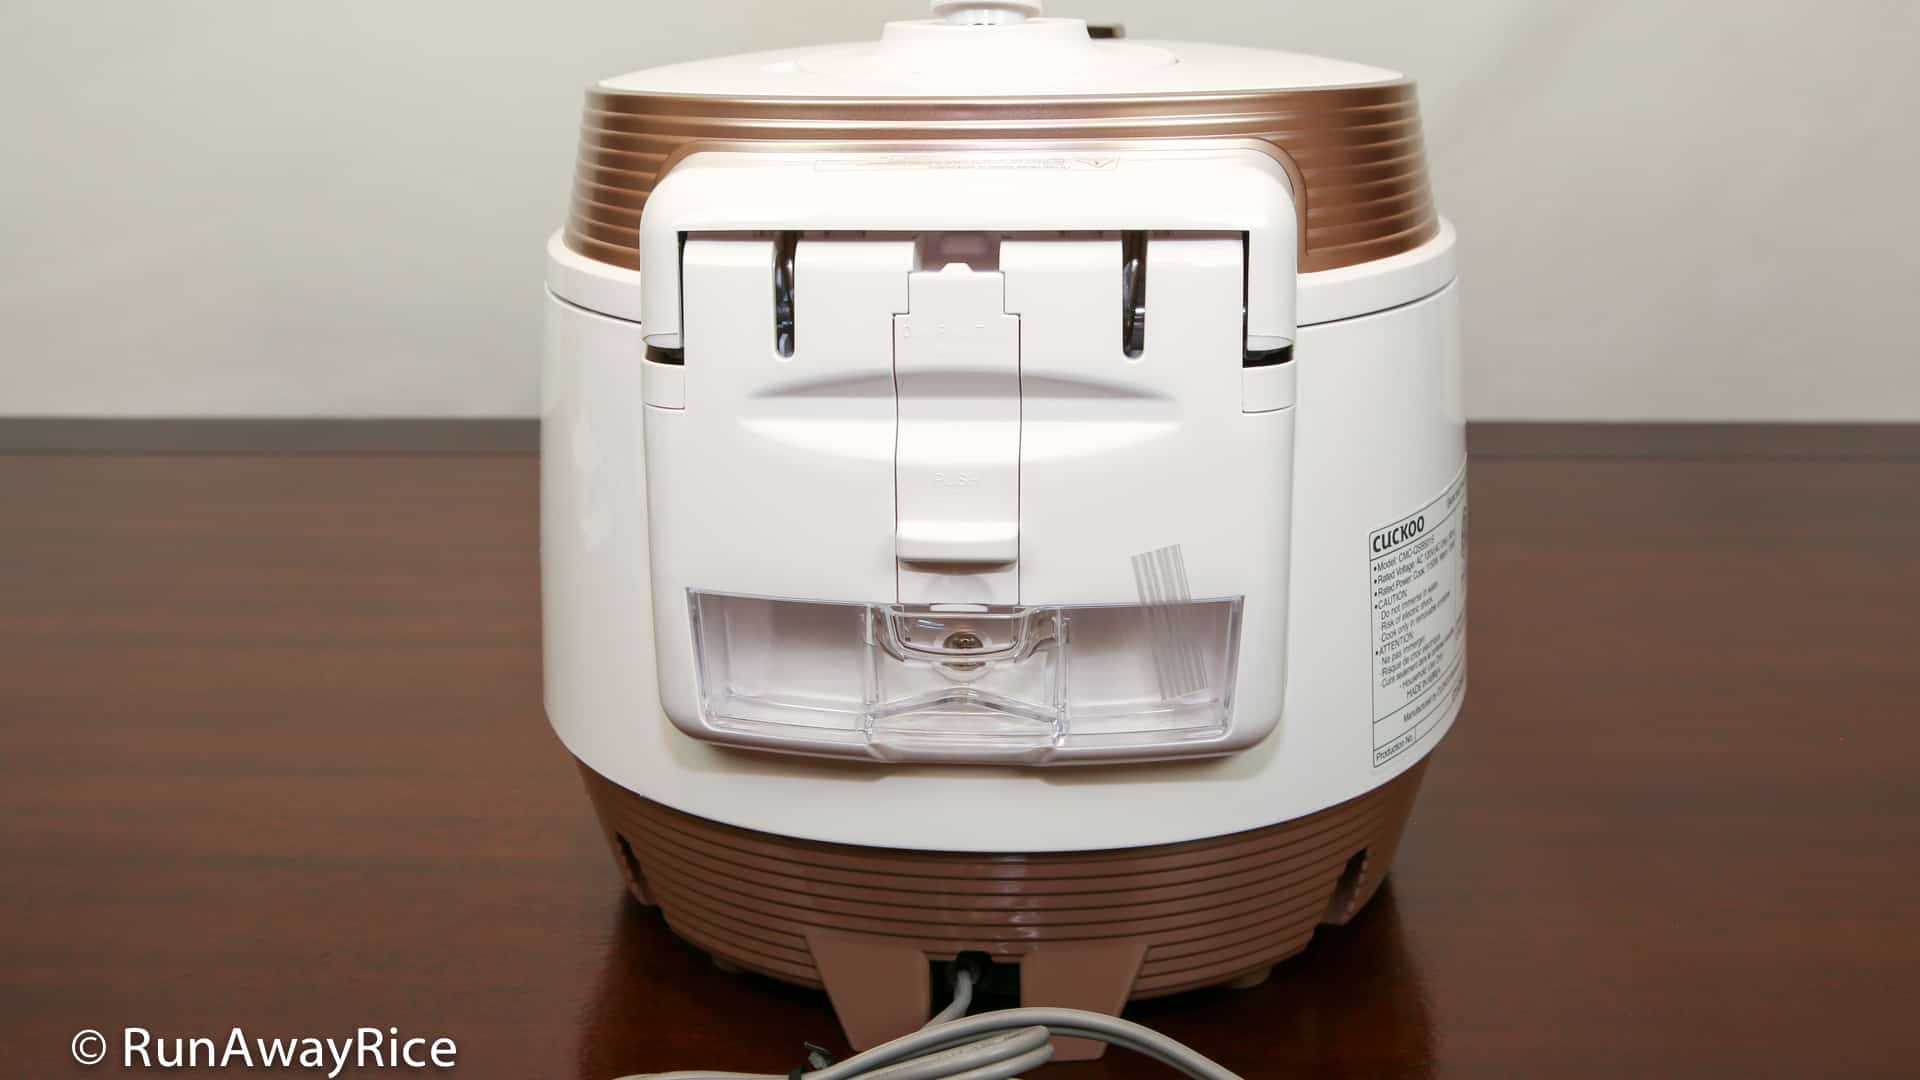 cuckoo rice cooker instructions